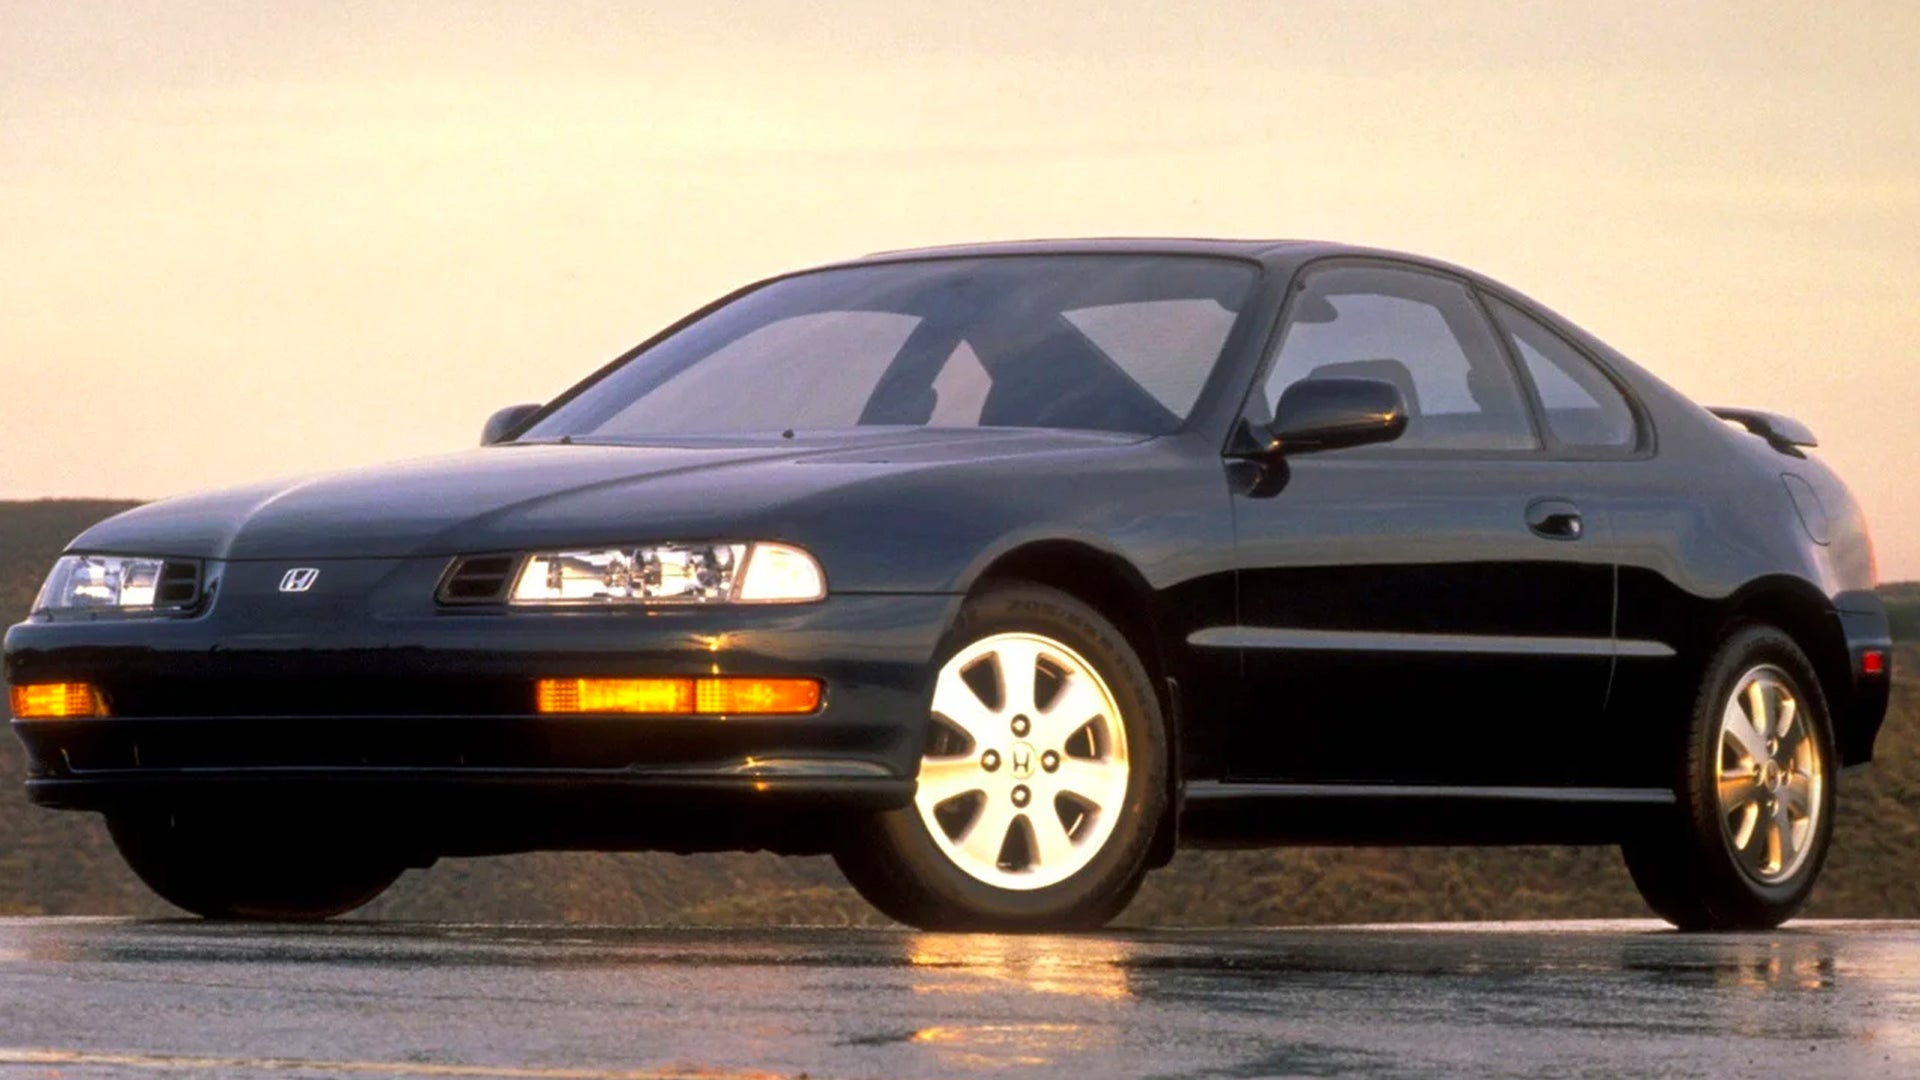 The Fourth-Gen Honda Prelude Is an Underrated Driver's Car